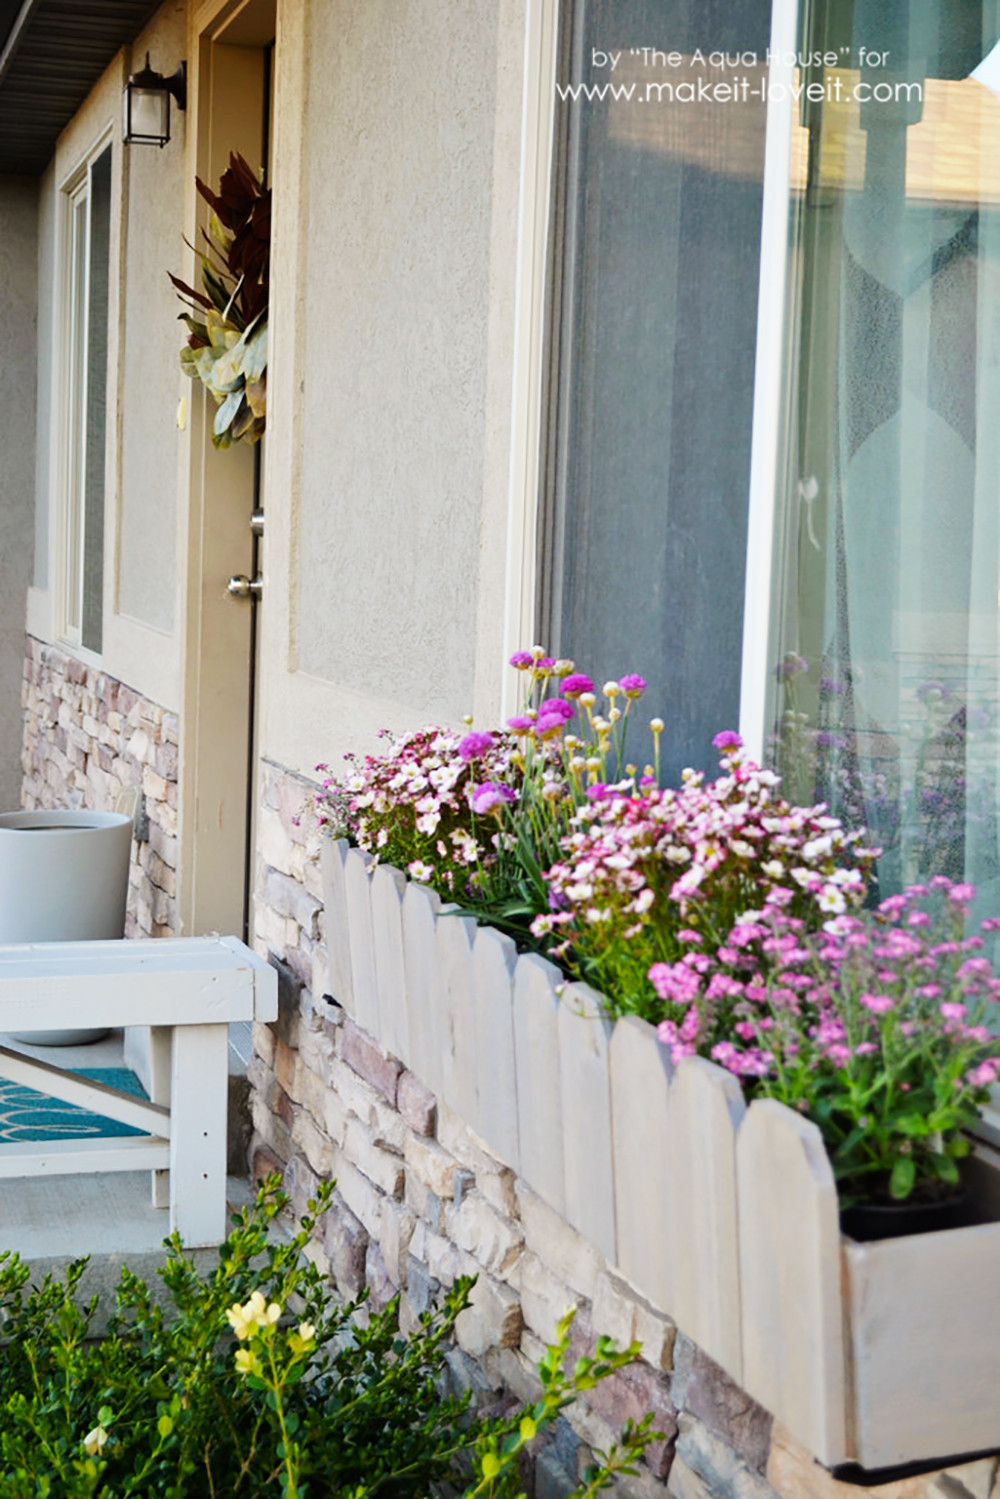 Best ideas about Window Flower Boxes DIY . Save or Pin DIY Window Flower Boxes Now.